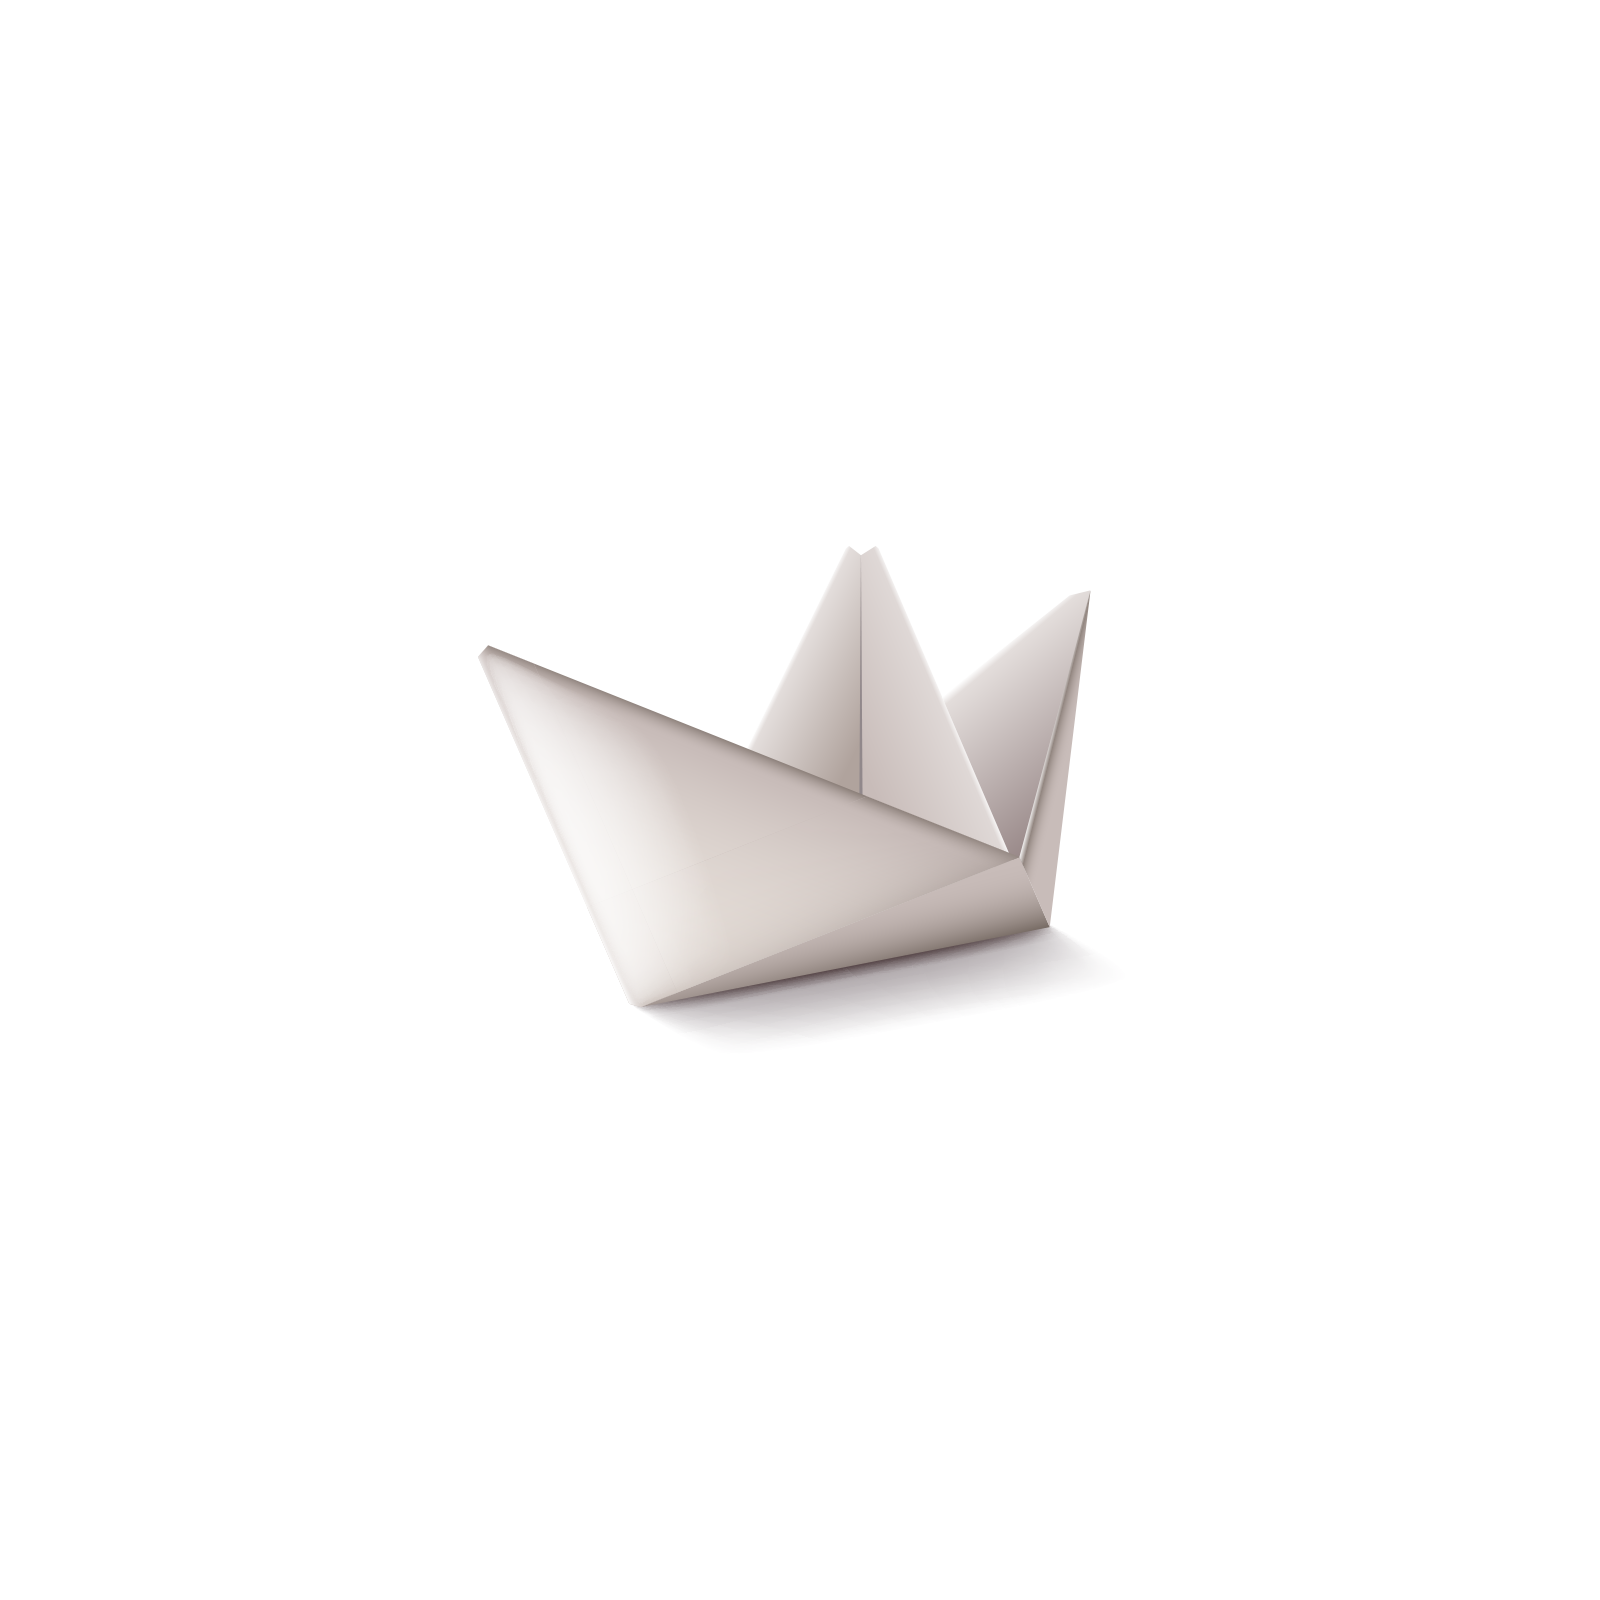 How To Make An Origami Sail Boat (With images) | Origami boat ... | 1600x1600